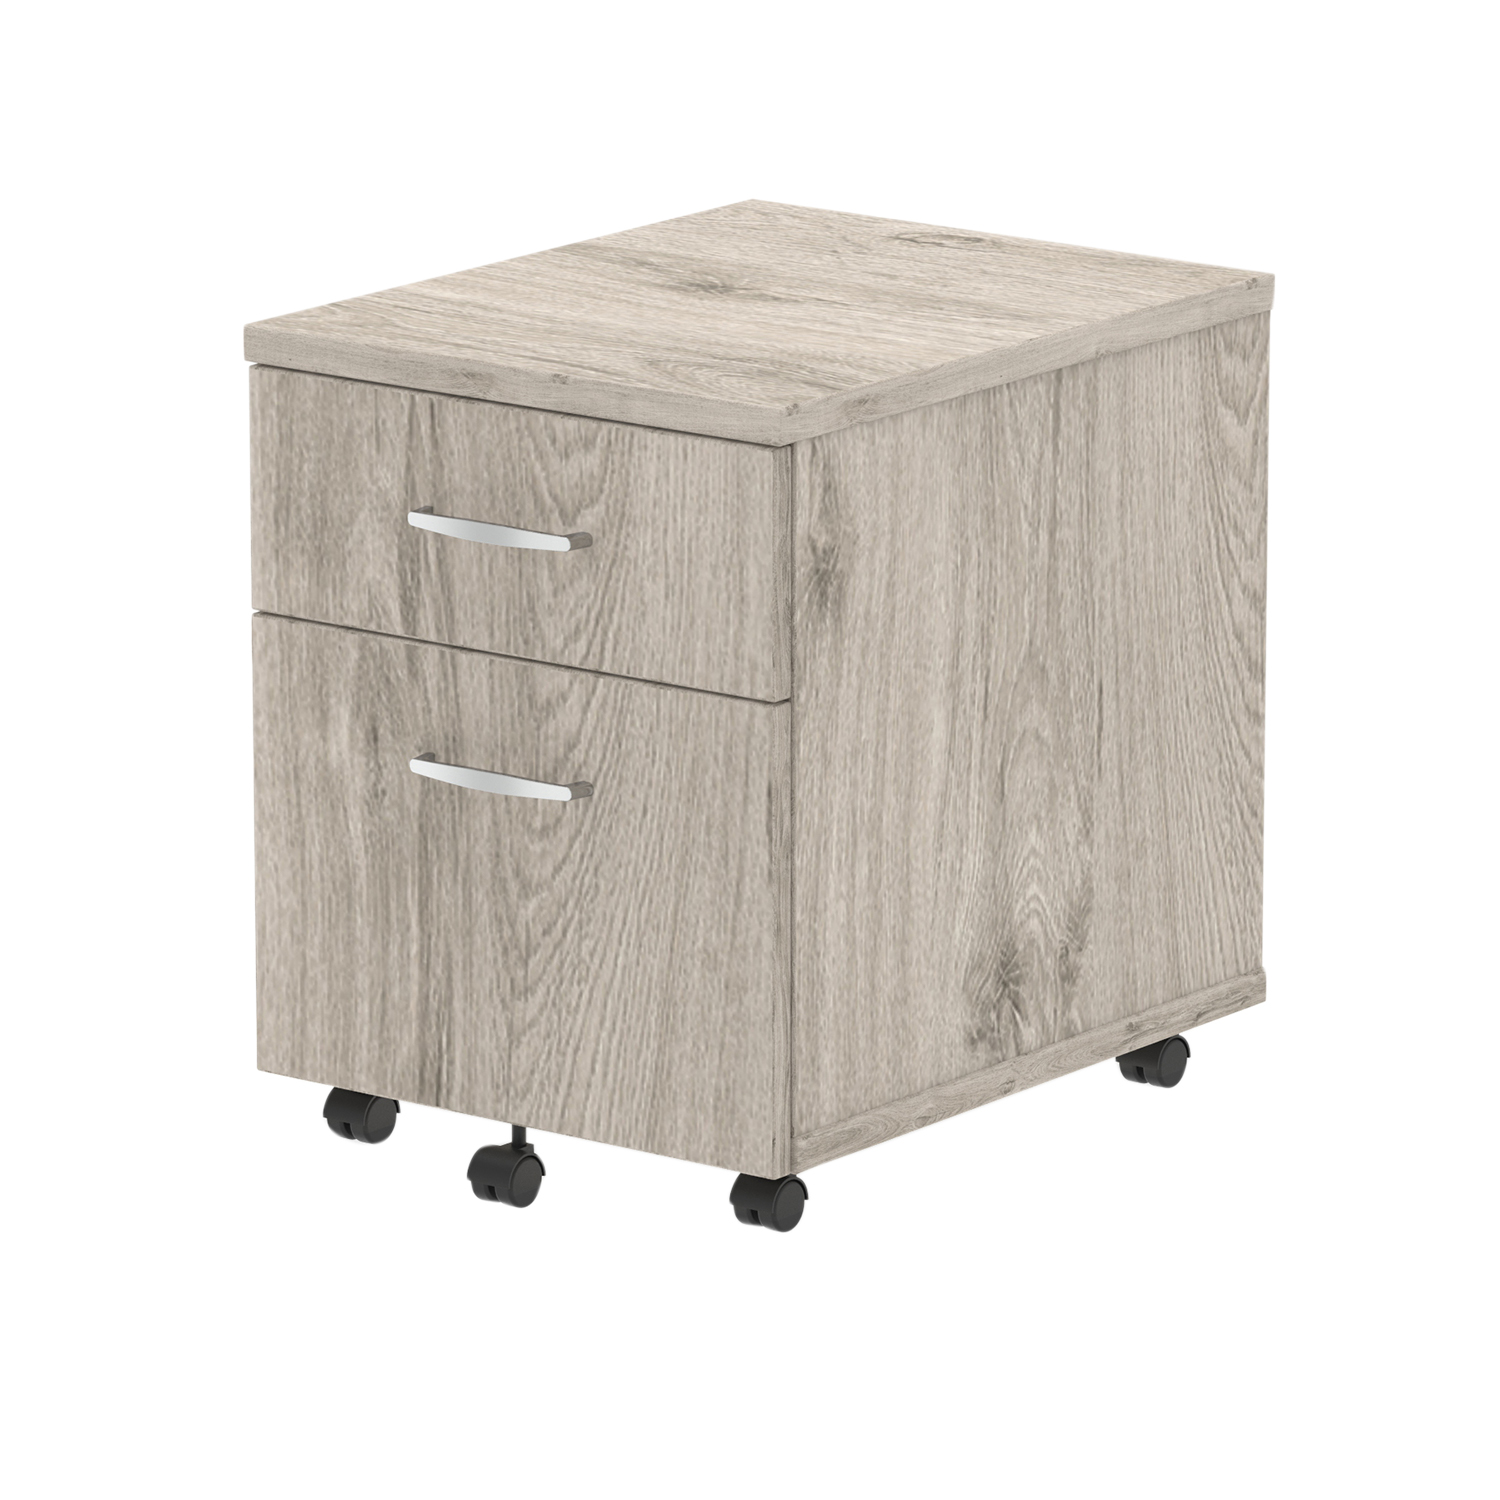 Pedestals Trexus 2 Drawer Mobile Pedestal 430x500x510mm Grey Oak Ref I003223